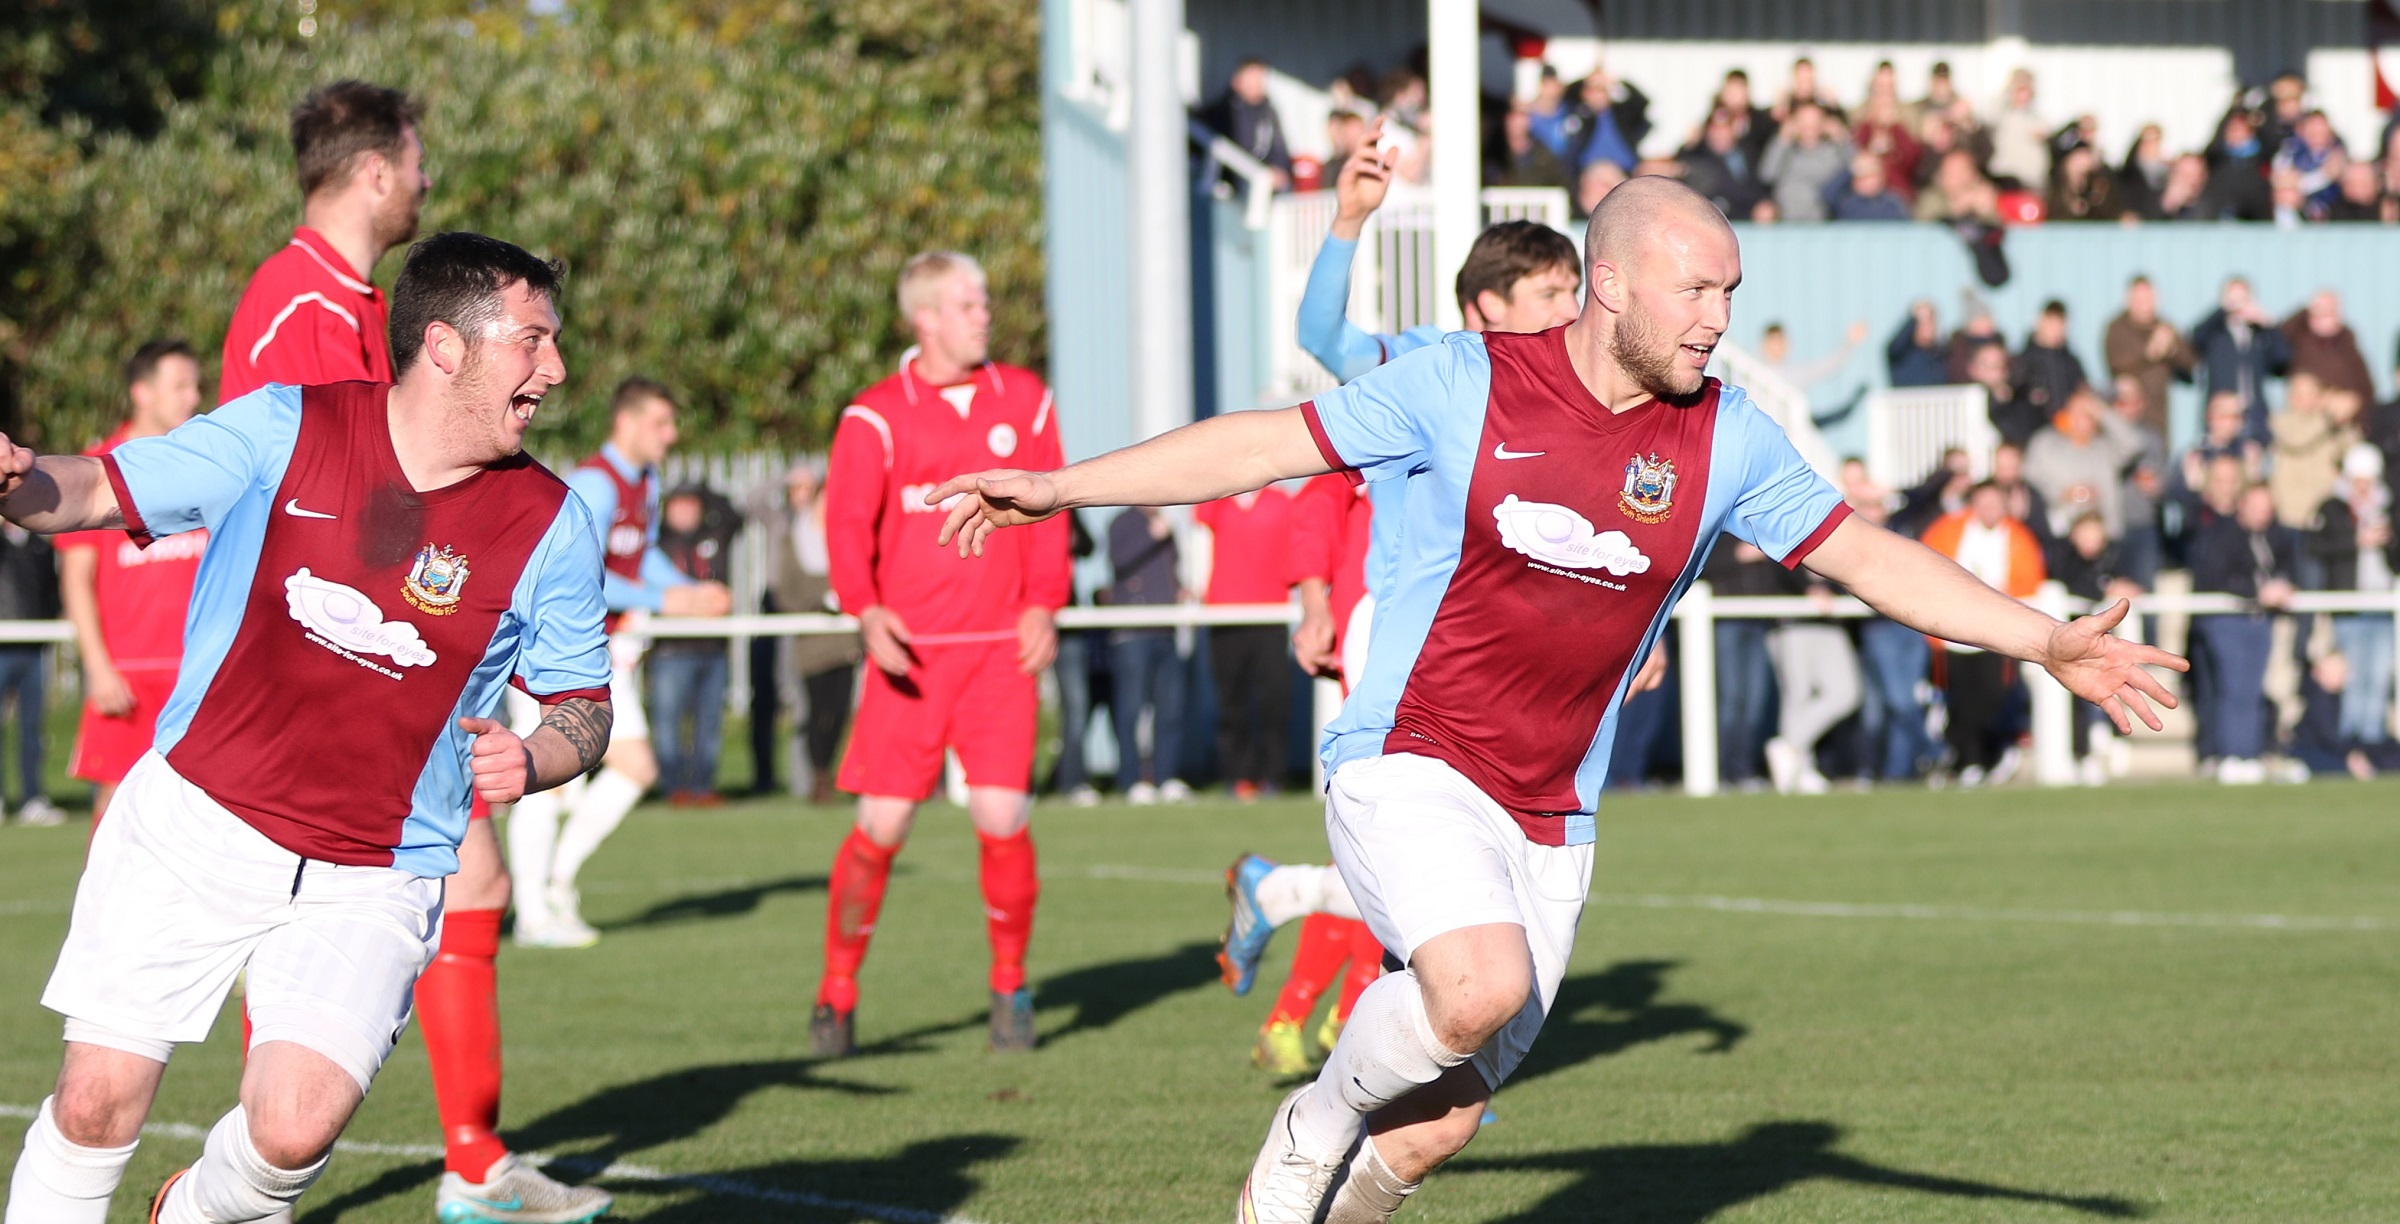 South Shields 4-3 Thornaby